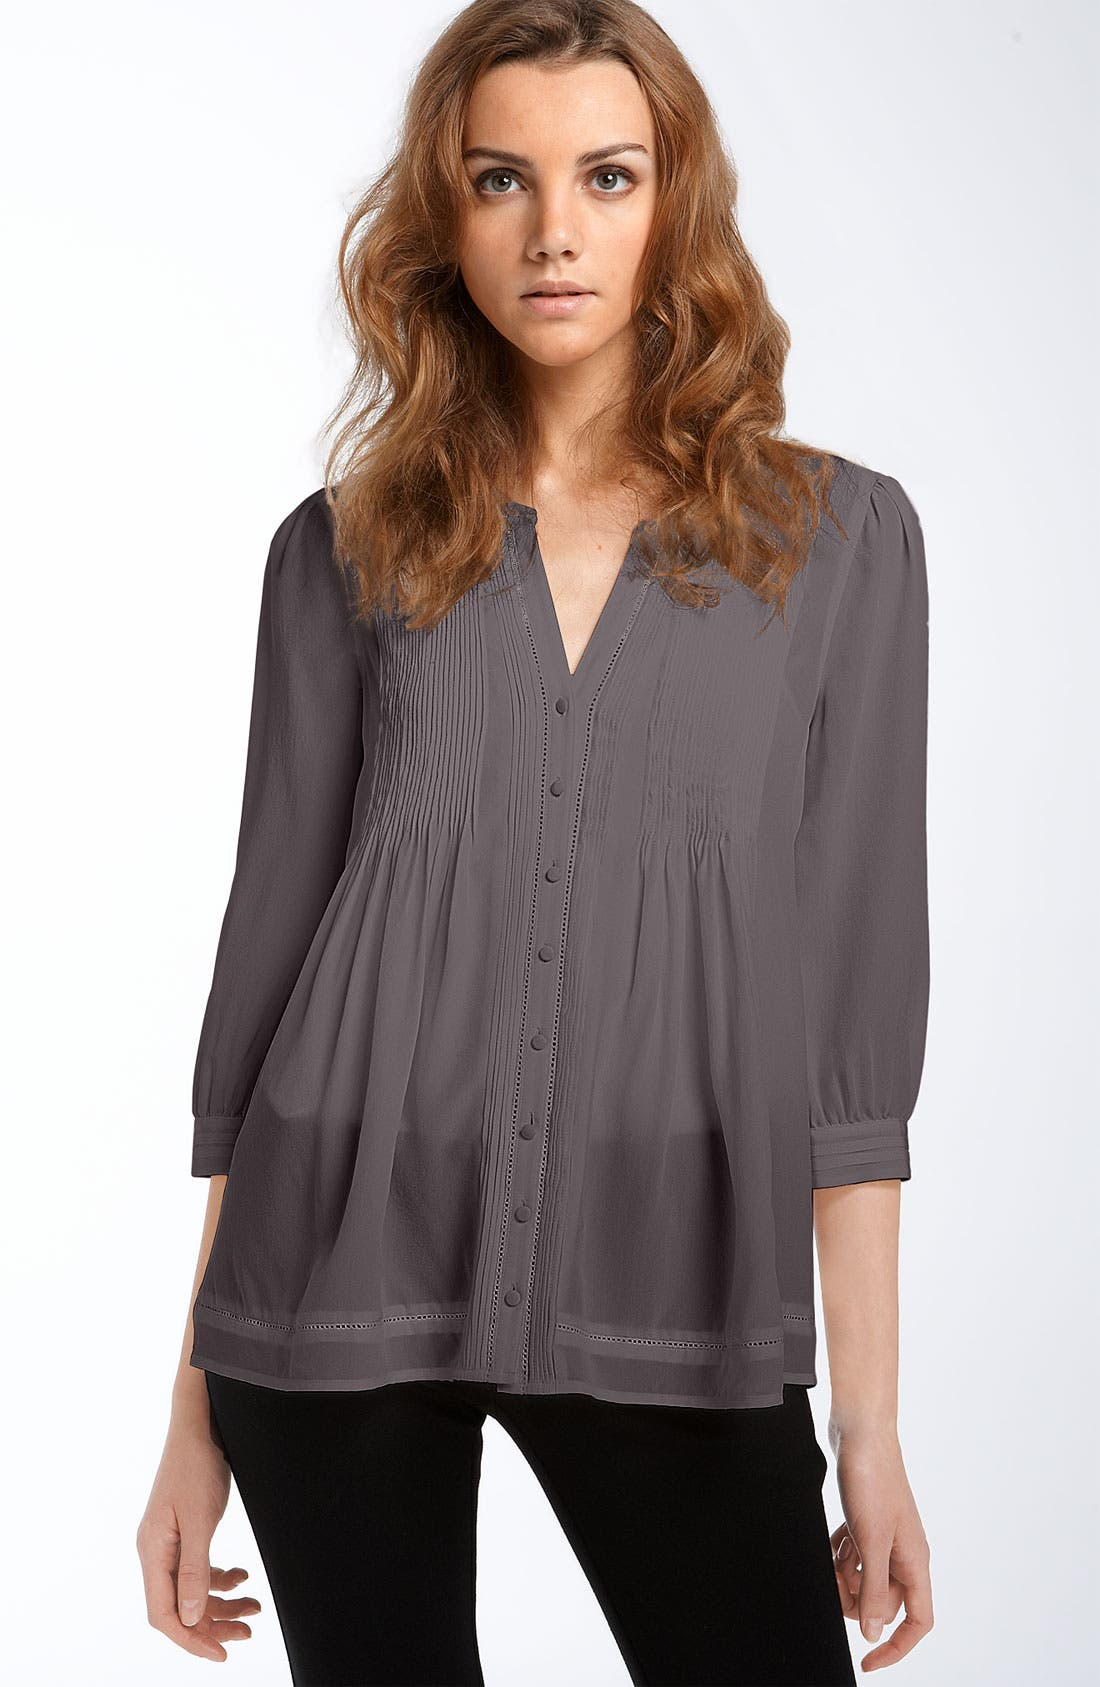 Alternate Image 1 Selected - Joie 'Emerson' Silk Blouse